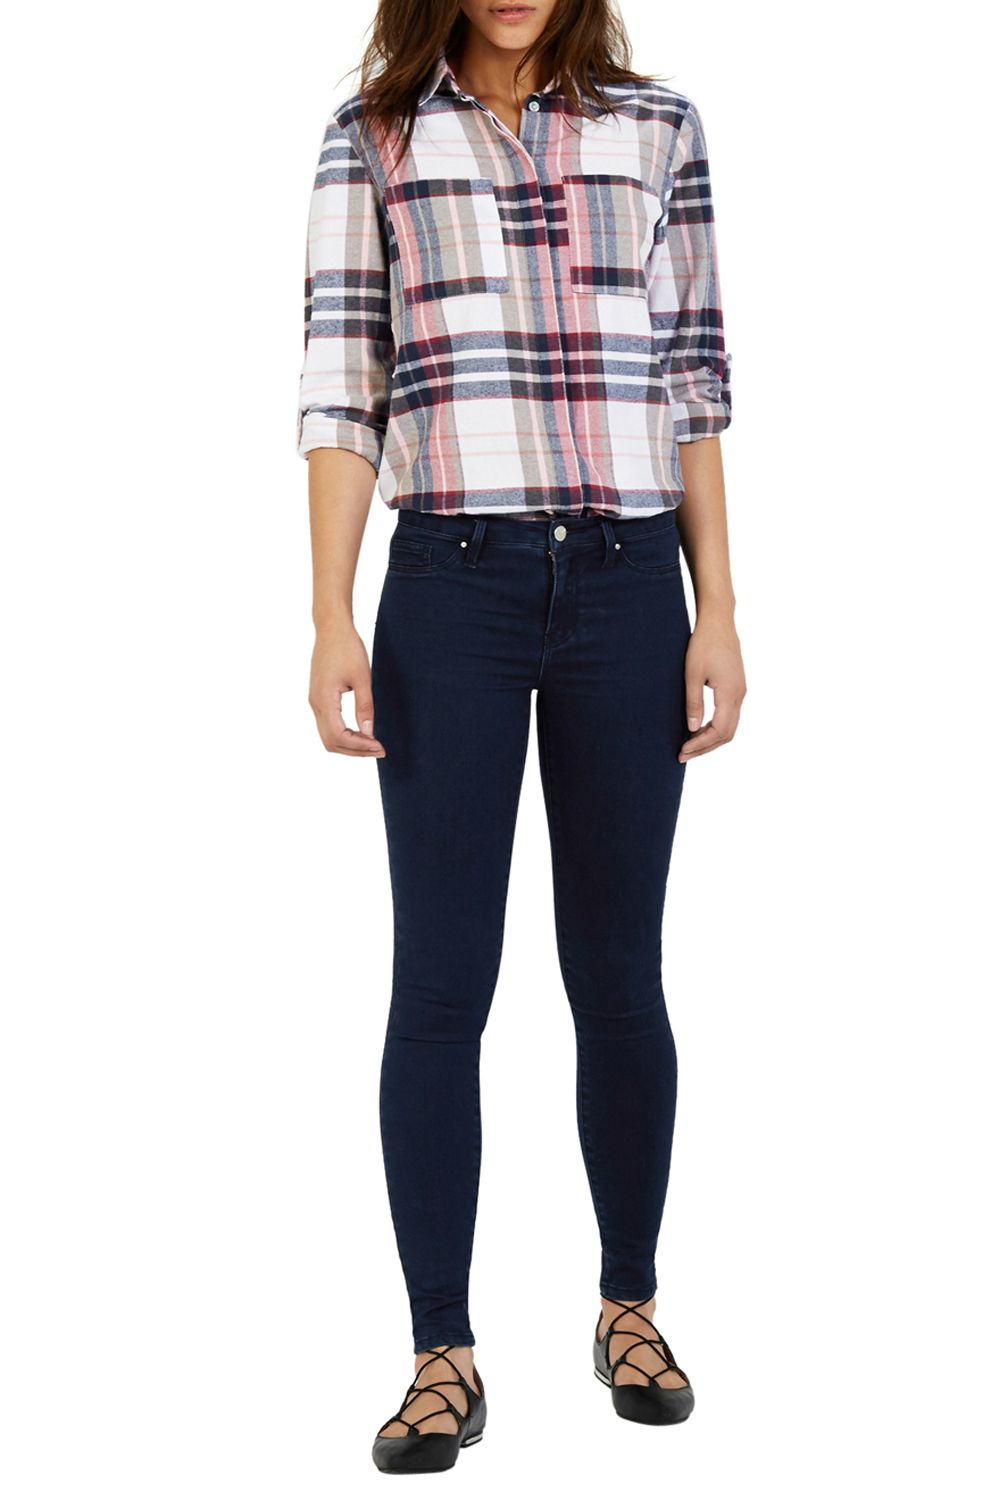 Warehouse Second Skin Jean in Blue | Lyst